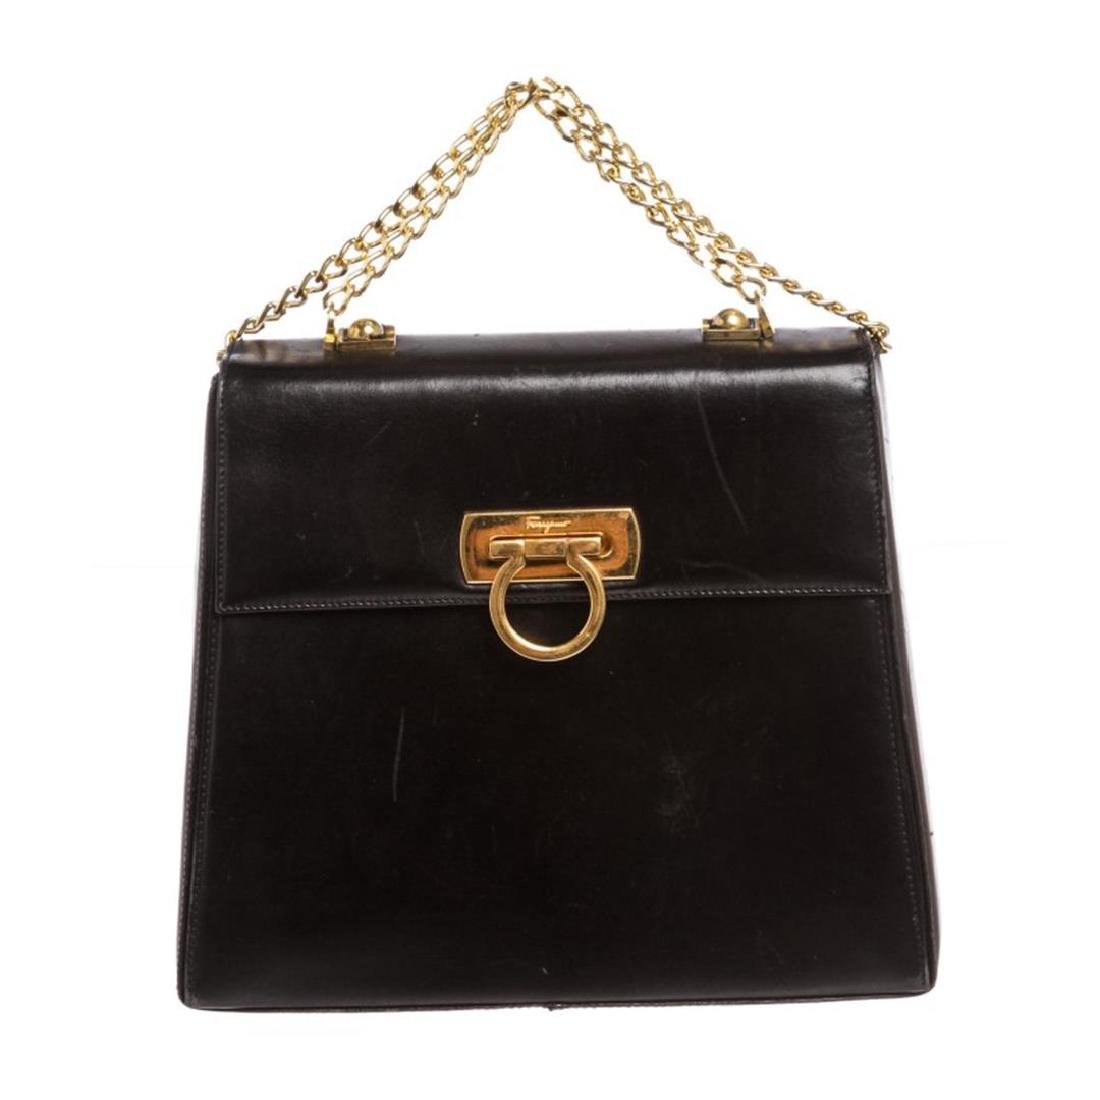 Salvatore Ferragamo Black Leather Chain Link Shoulder